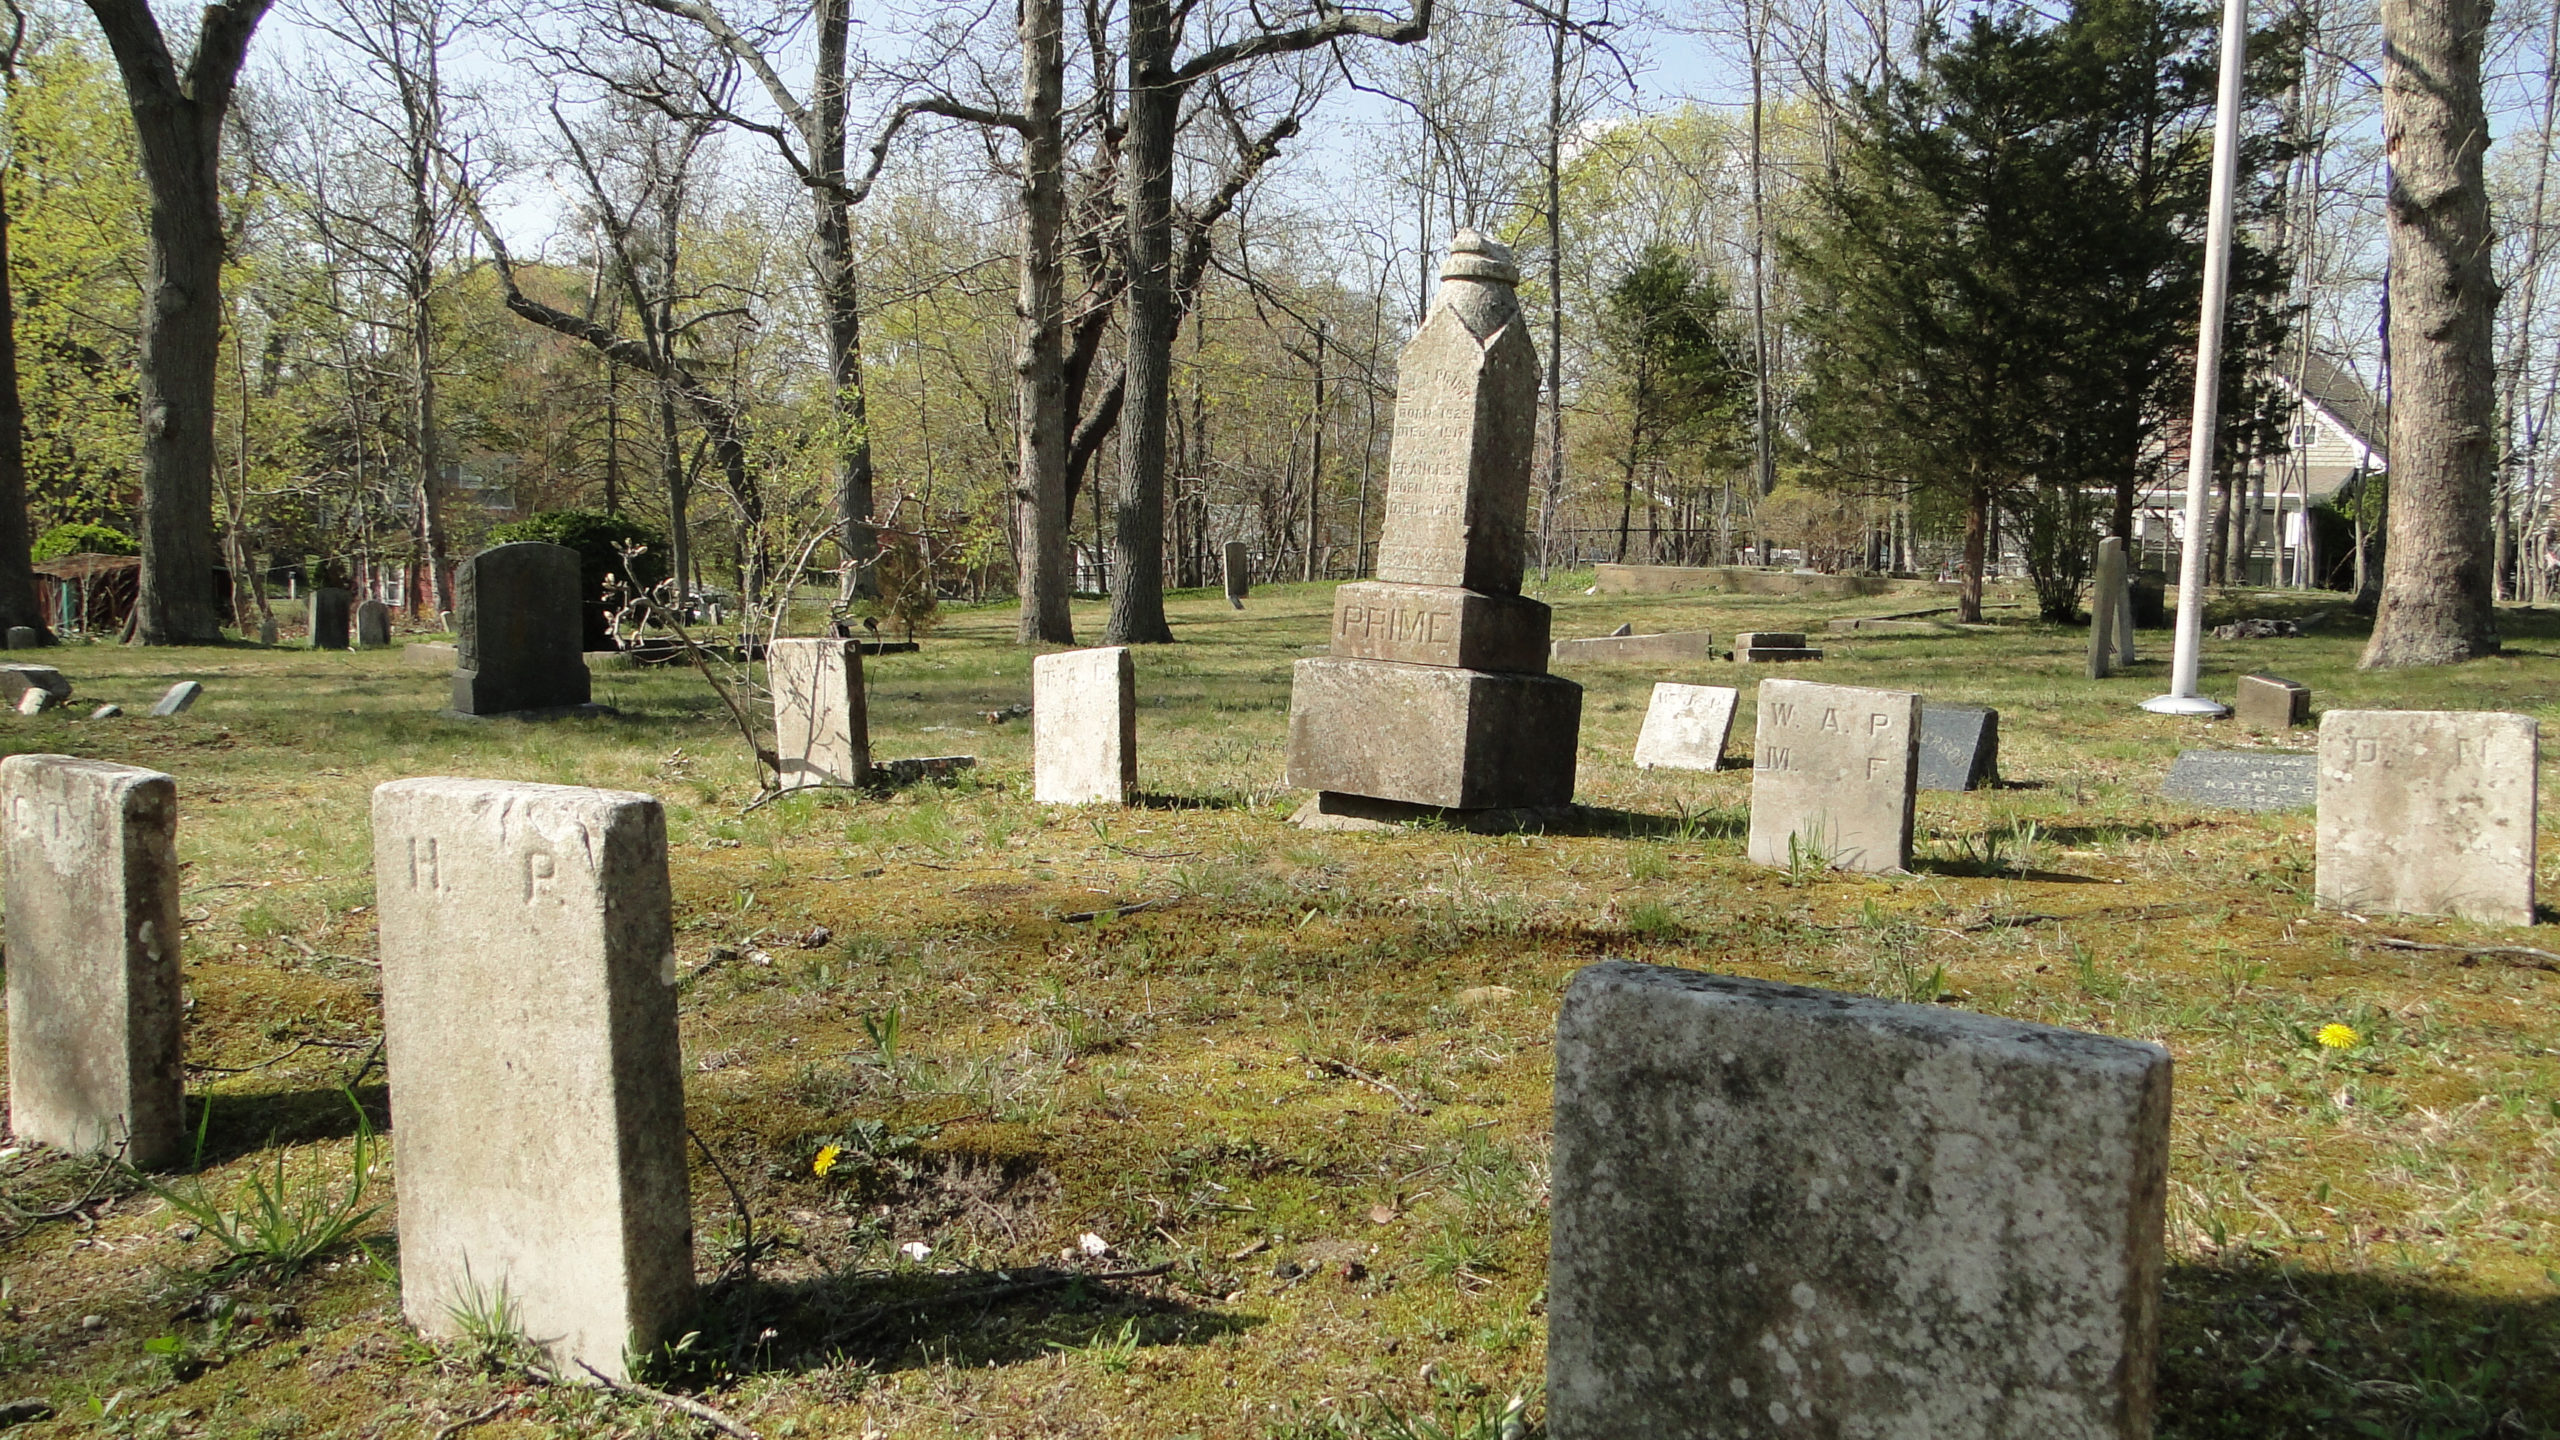 The Eastville Community Historical Society is organizing a cleanup of the African Methodist Episcopal Zion Cemetery on Eastville Avenue in Sag Harbor